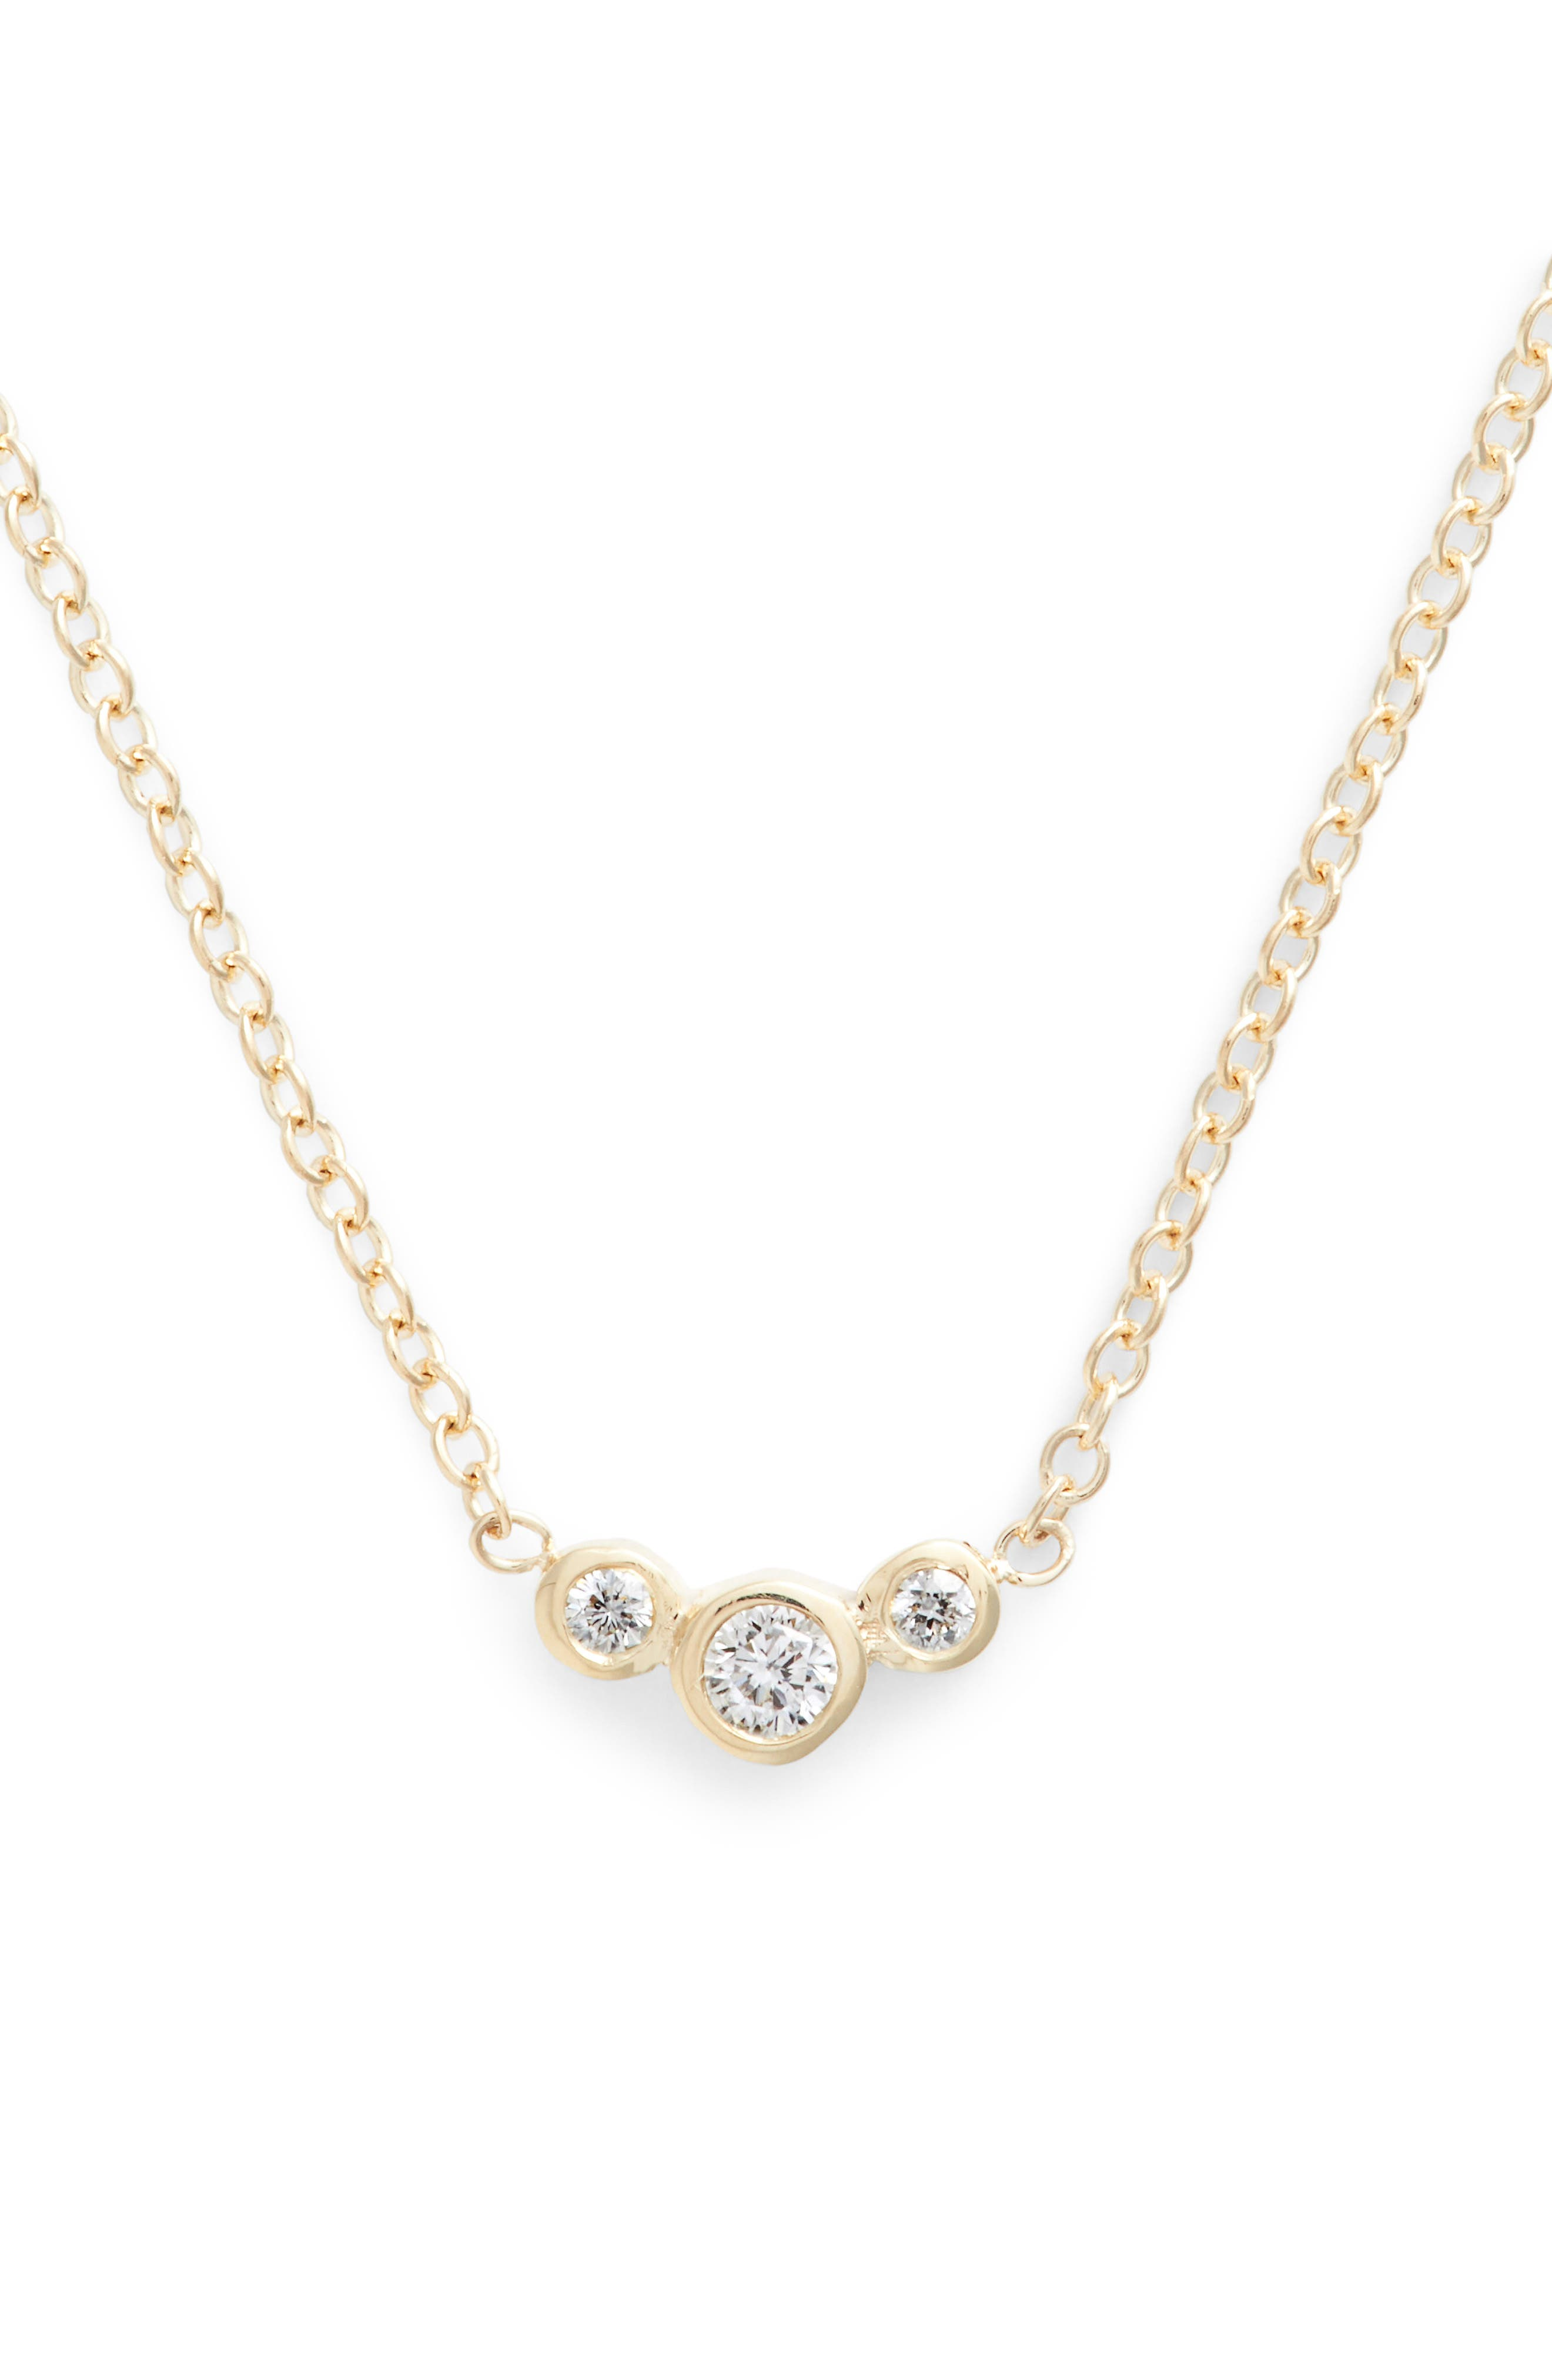 Curved 3-Diamond Bezel Pendant Necklace,                             Main thumbnail 1, color,                             YELLOW GOLD